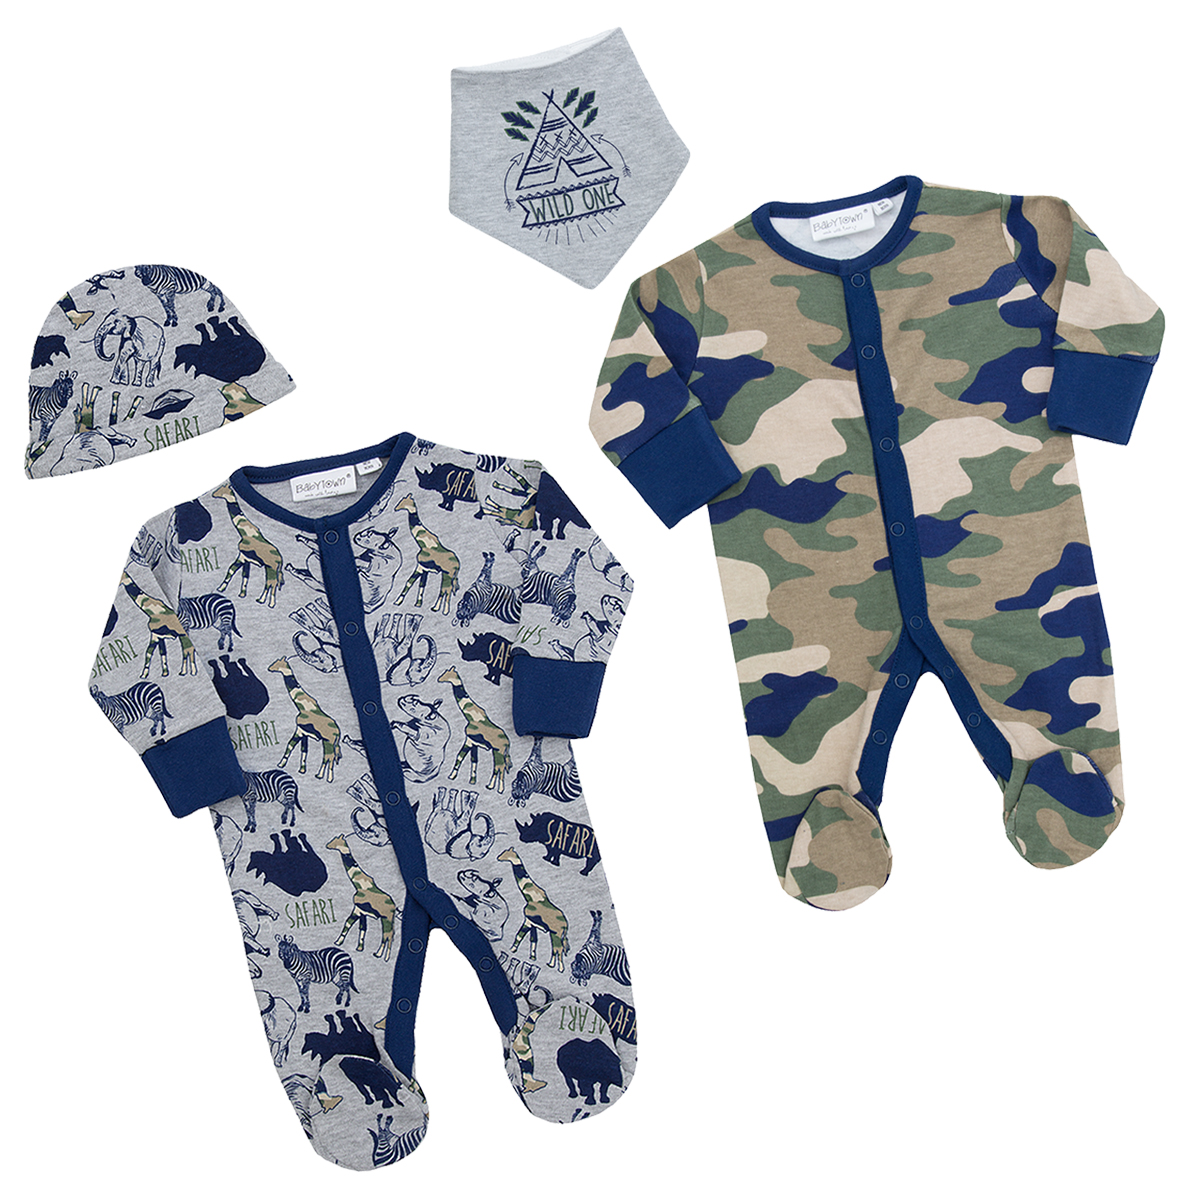 Integrated Scratch Mittens Cotton Rich All-in-One BABY TOWN Baby Boys Camo Safari Sleepsuit Newborn-9 Months